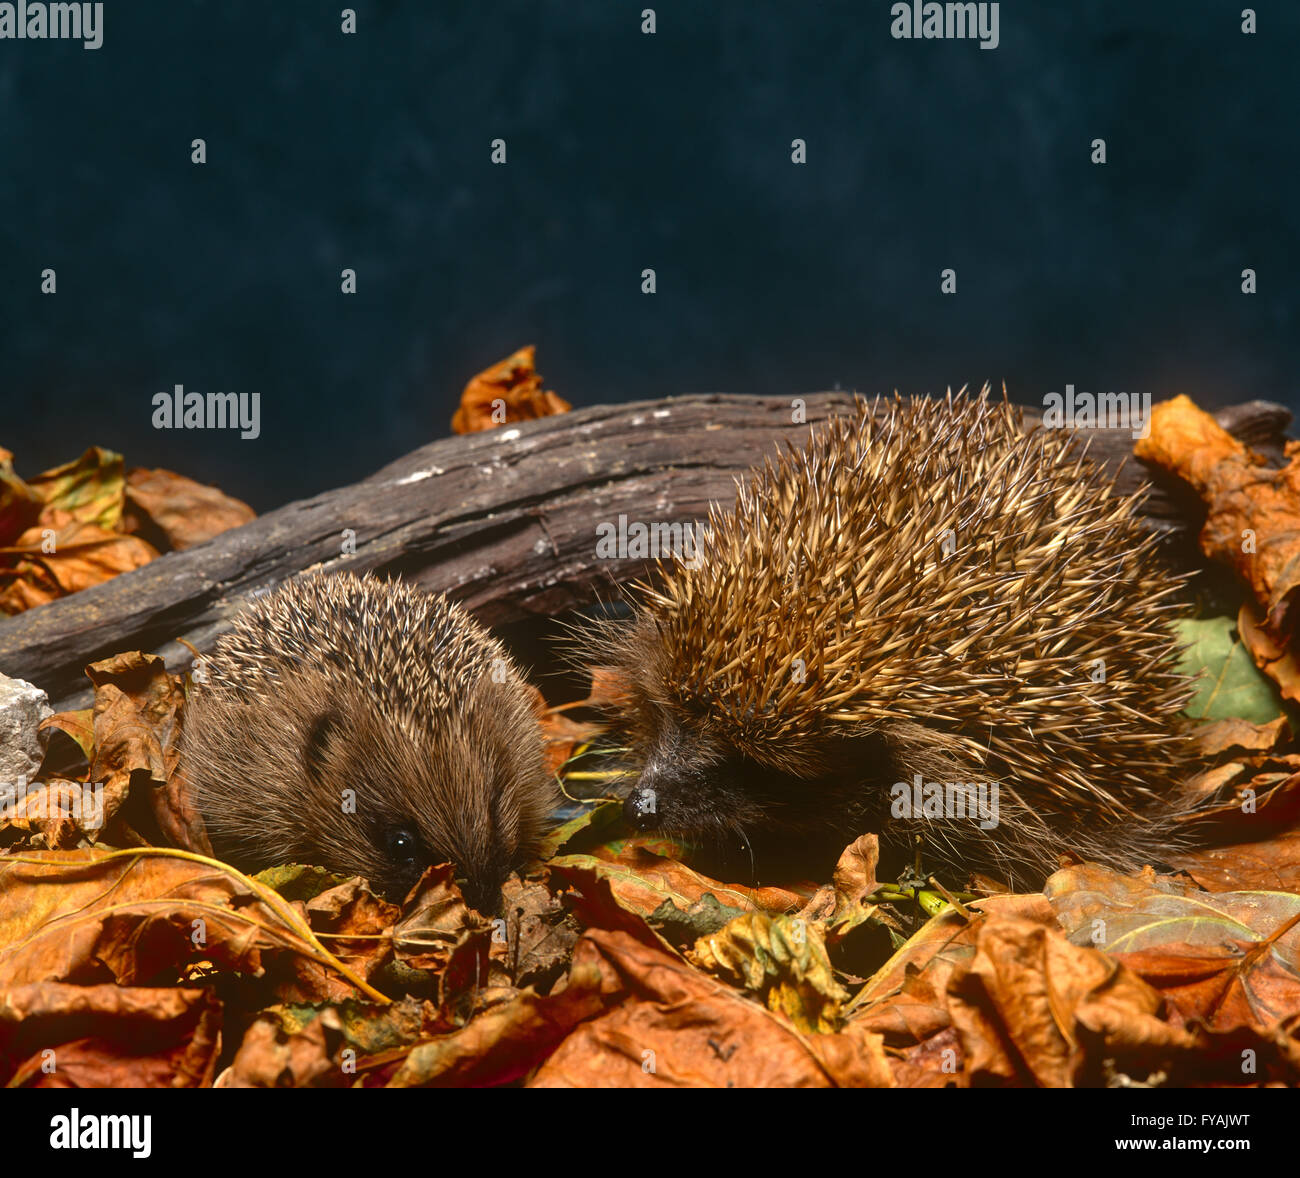 Two hedgehogs sitting in leaves, inside. - Stock Image